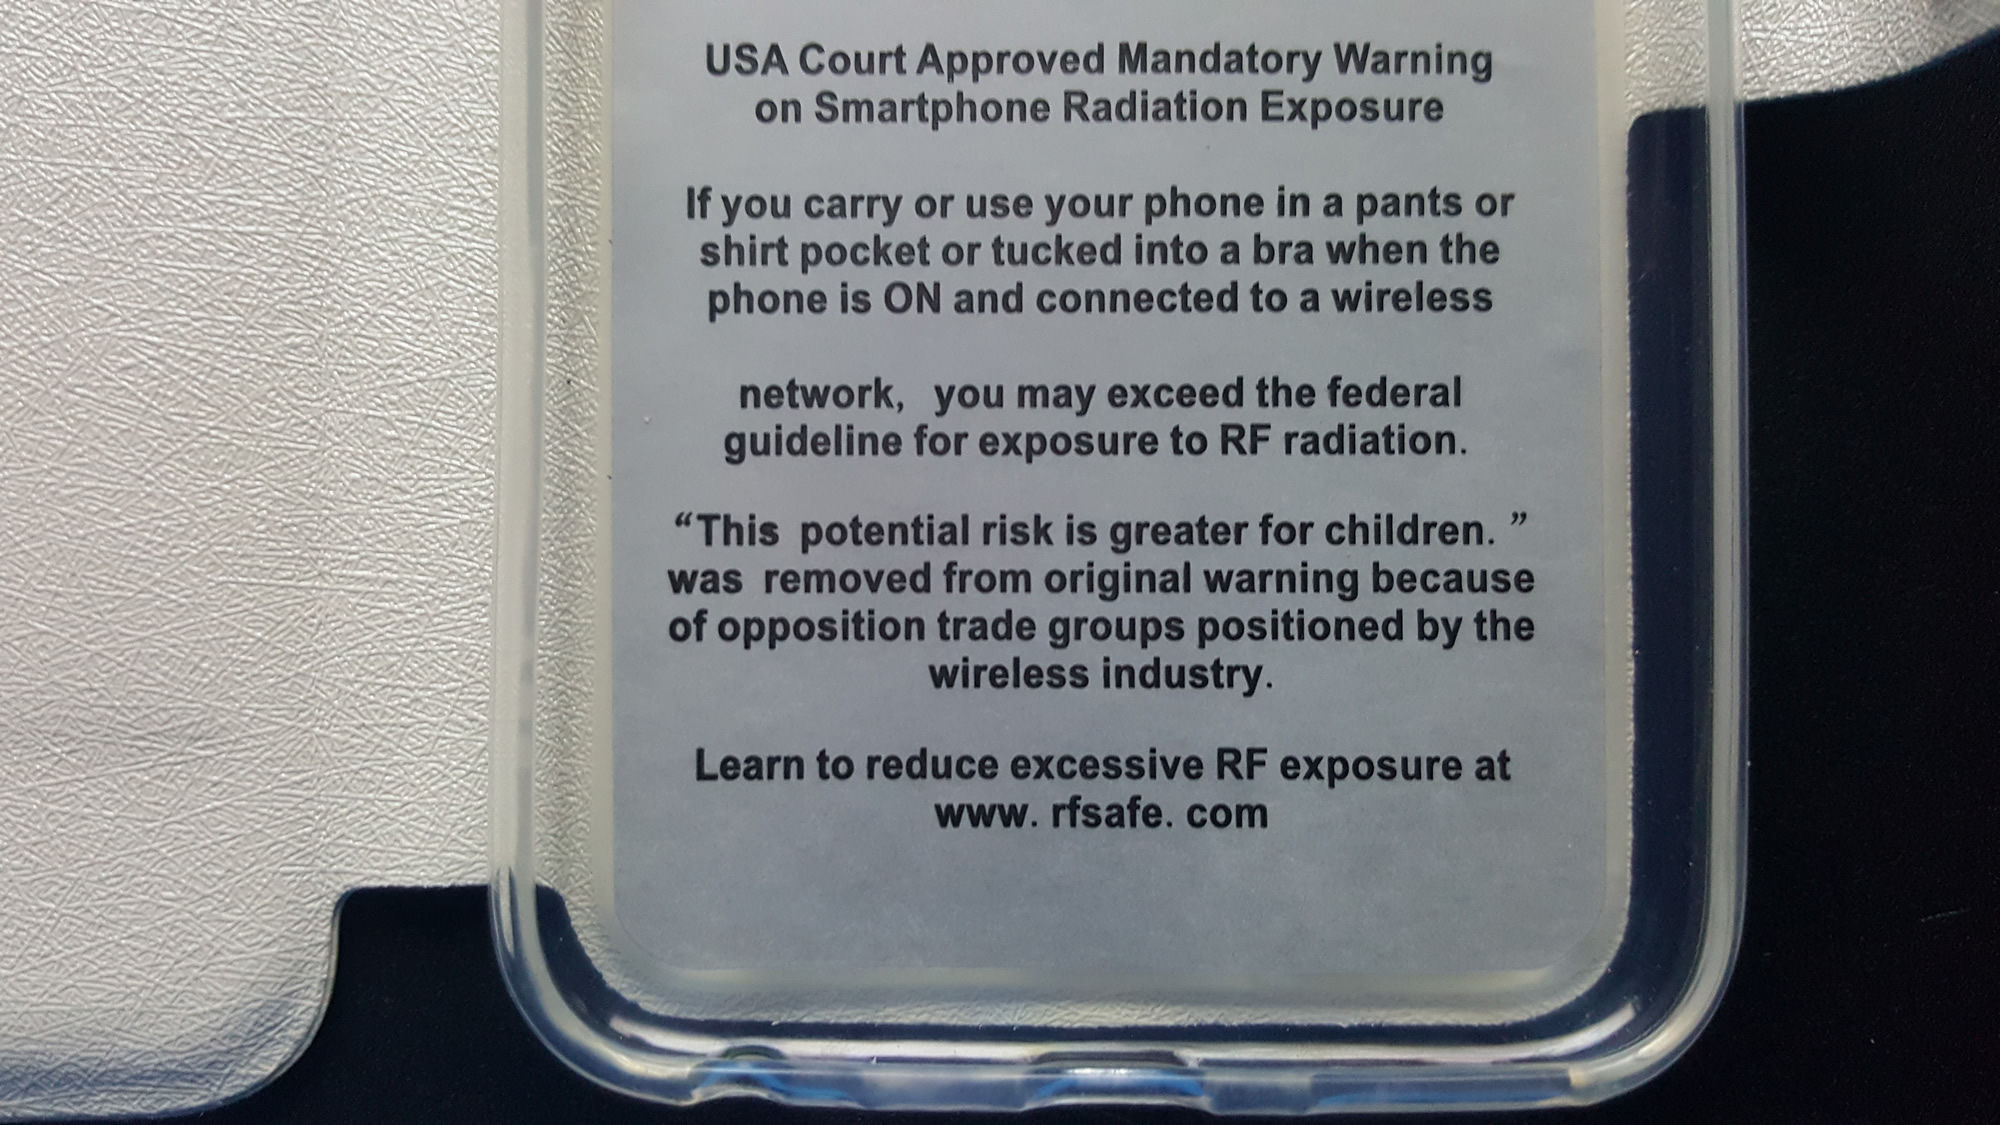 Rf safes new galaxy s7 flip case contains berkeley cell phone rf safes new galaxy s7 flip case contains berkeley cell phone radiation warning sciox Gallery